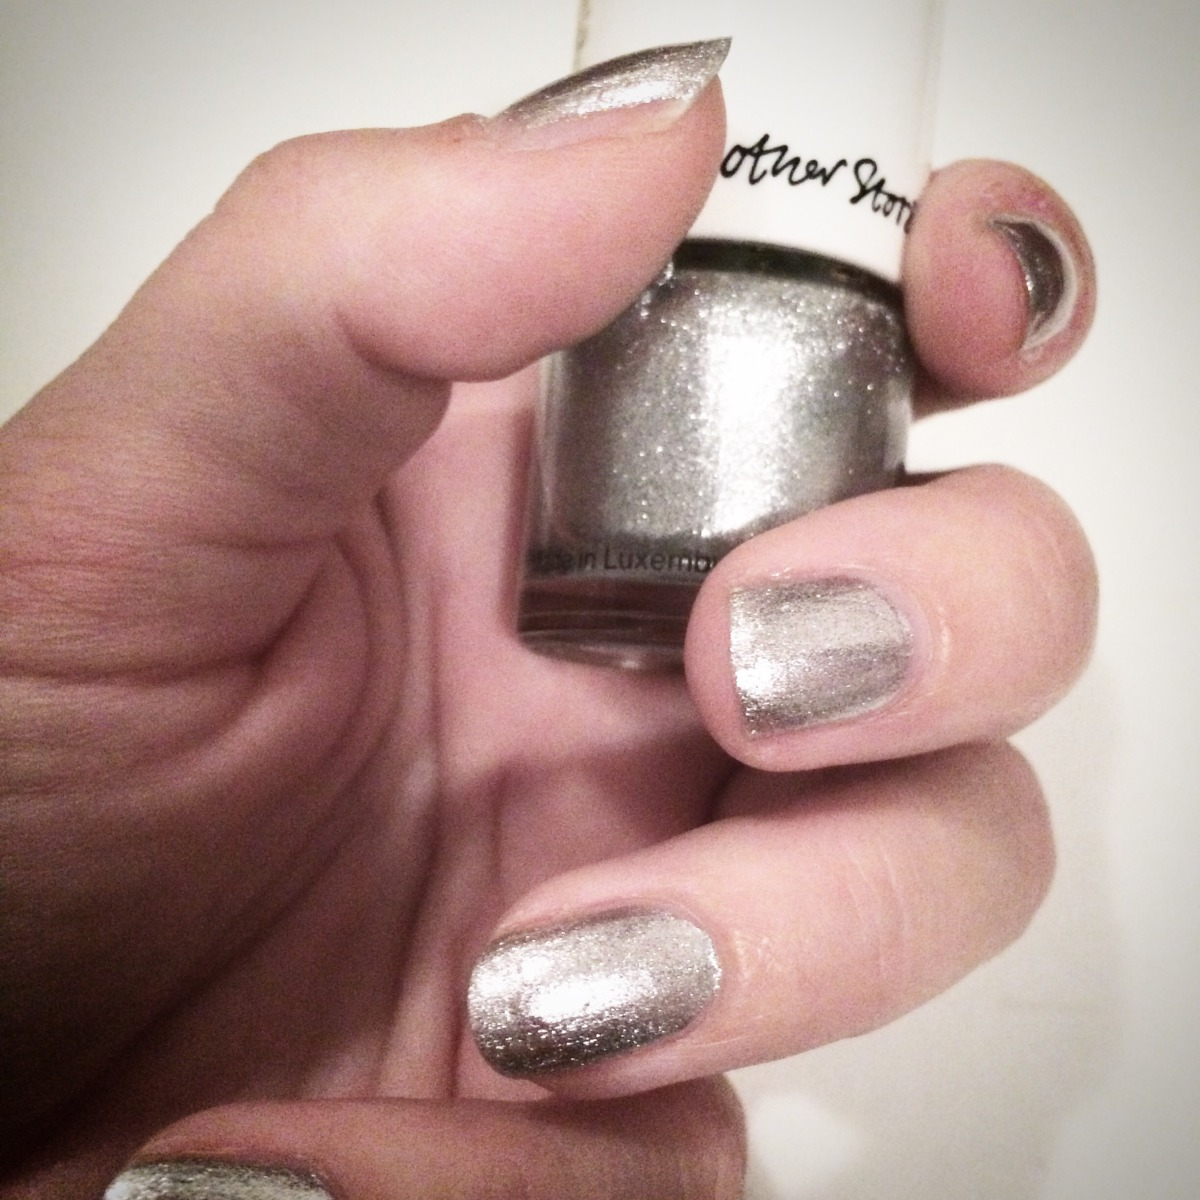 Besparkling, Naillack, nail, silver, sparkle, give-away